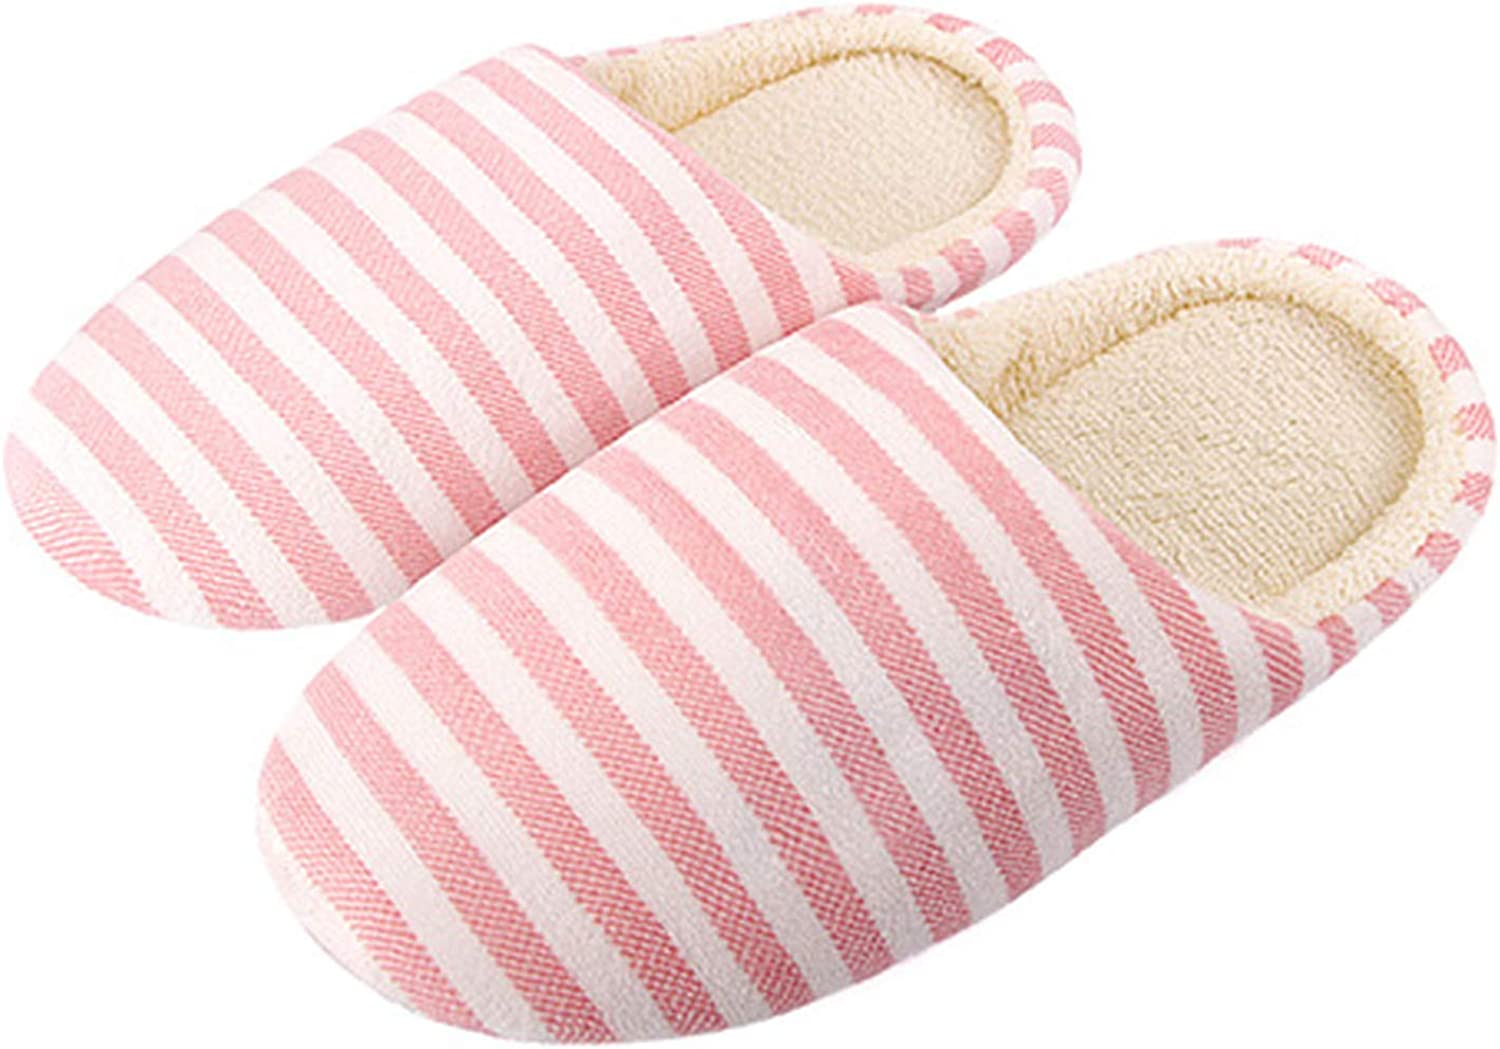 Home Slippers Women Big Size shoes Soft Velvet Girl Lady Indoor Flats shoes Slipper